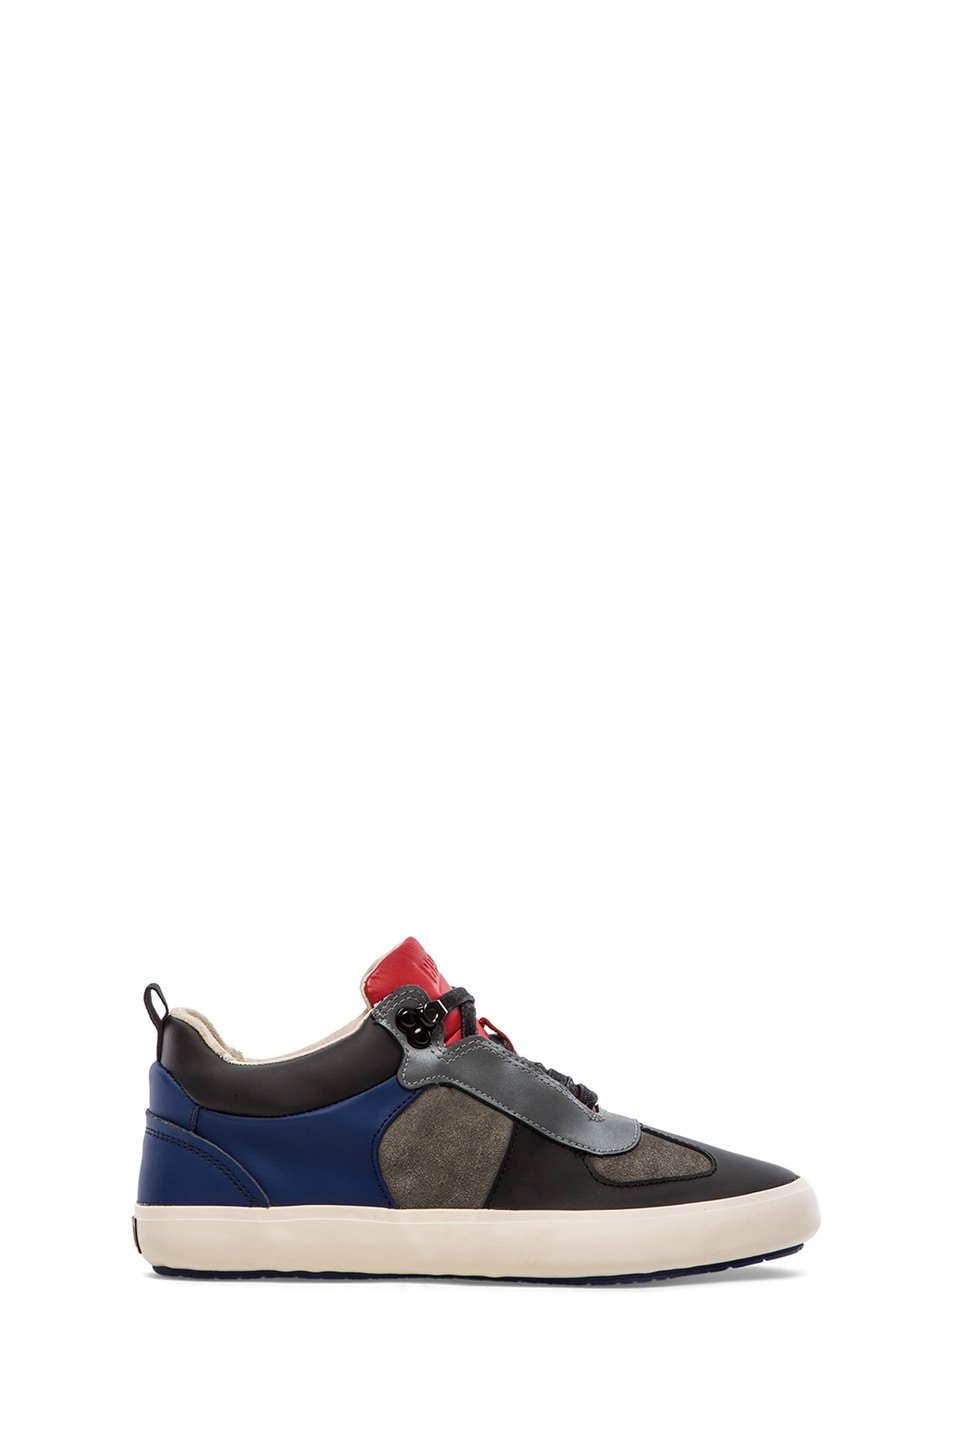 Camper Clay Sneaker in Mutli Assorted